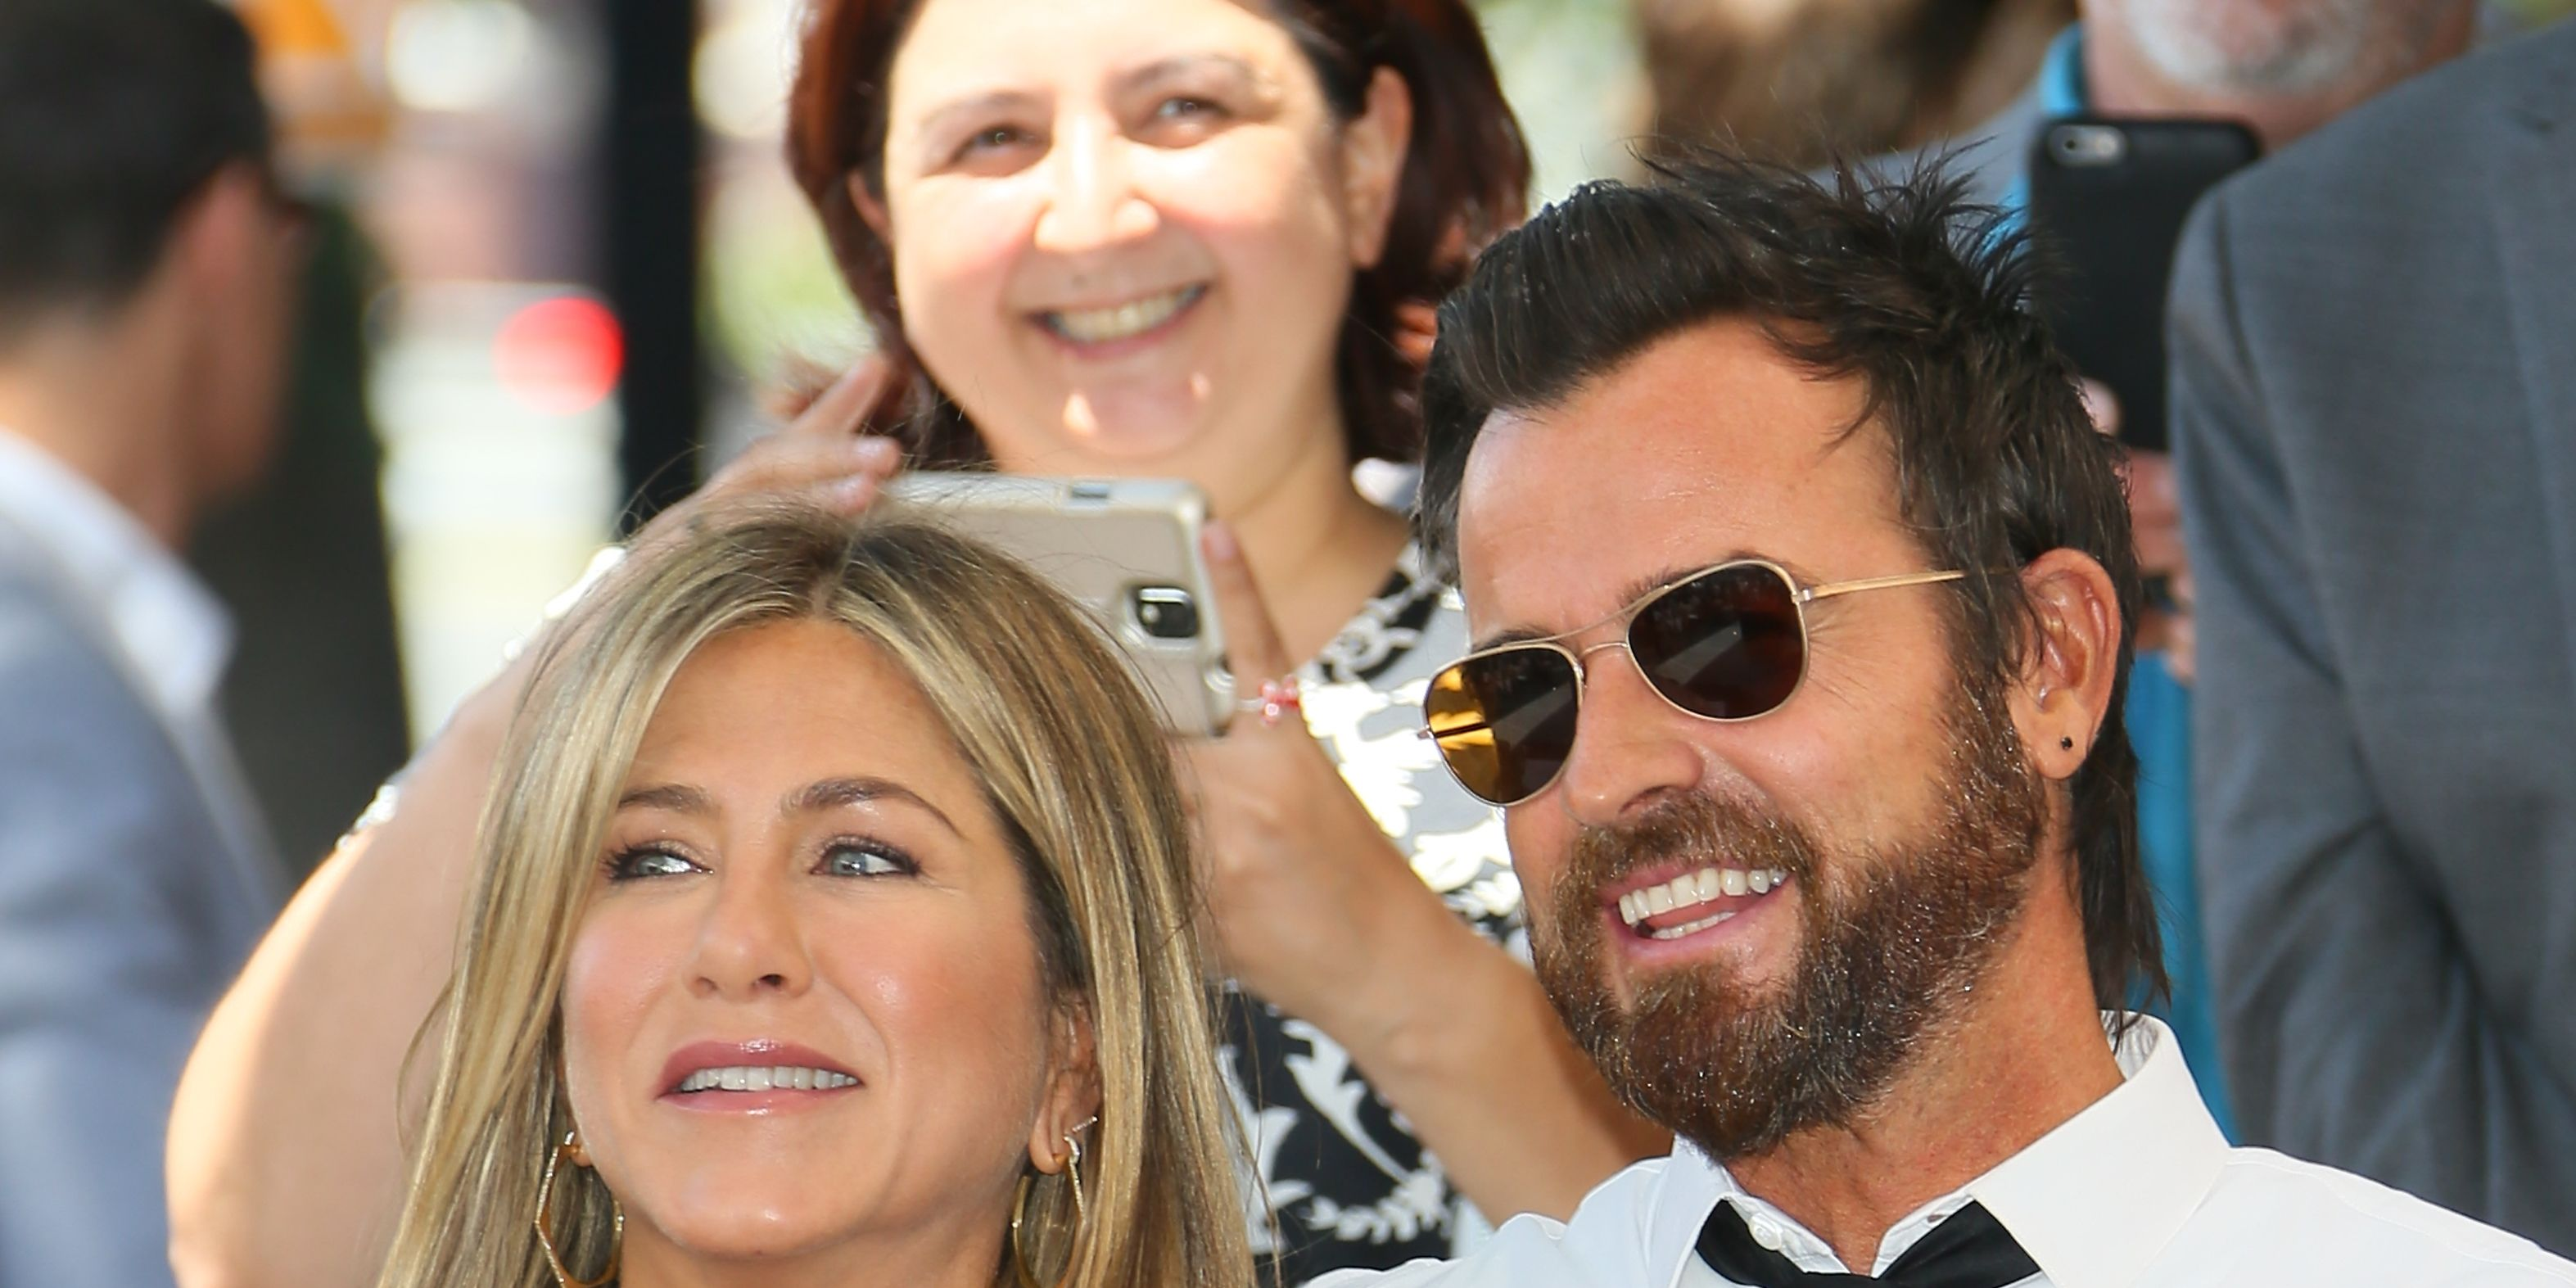 What Jennifer Aniston and Justin Theroux's pre-breakup body language said about their relationship